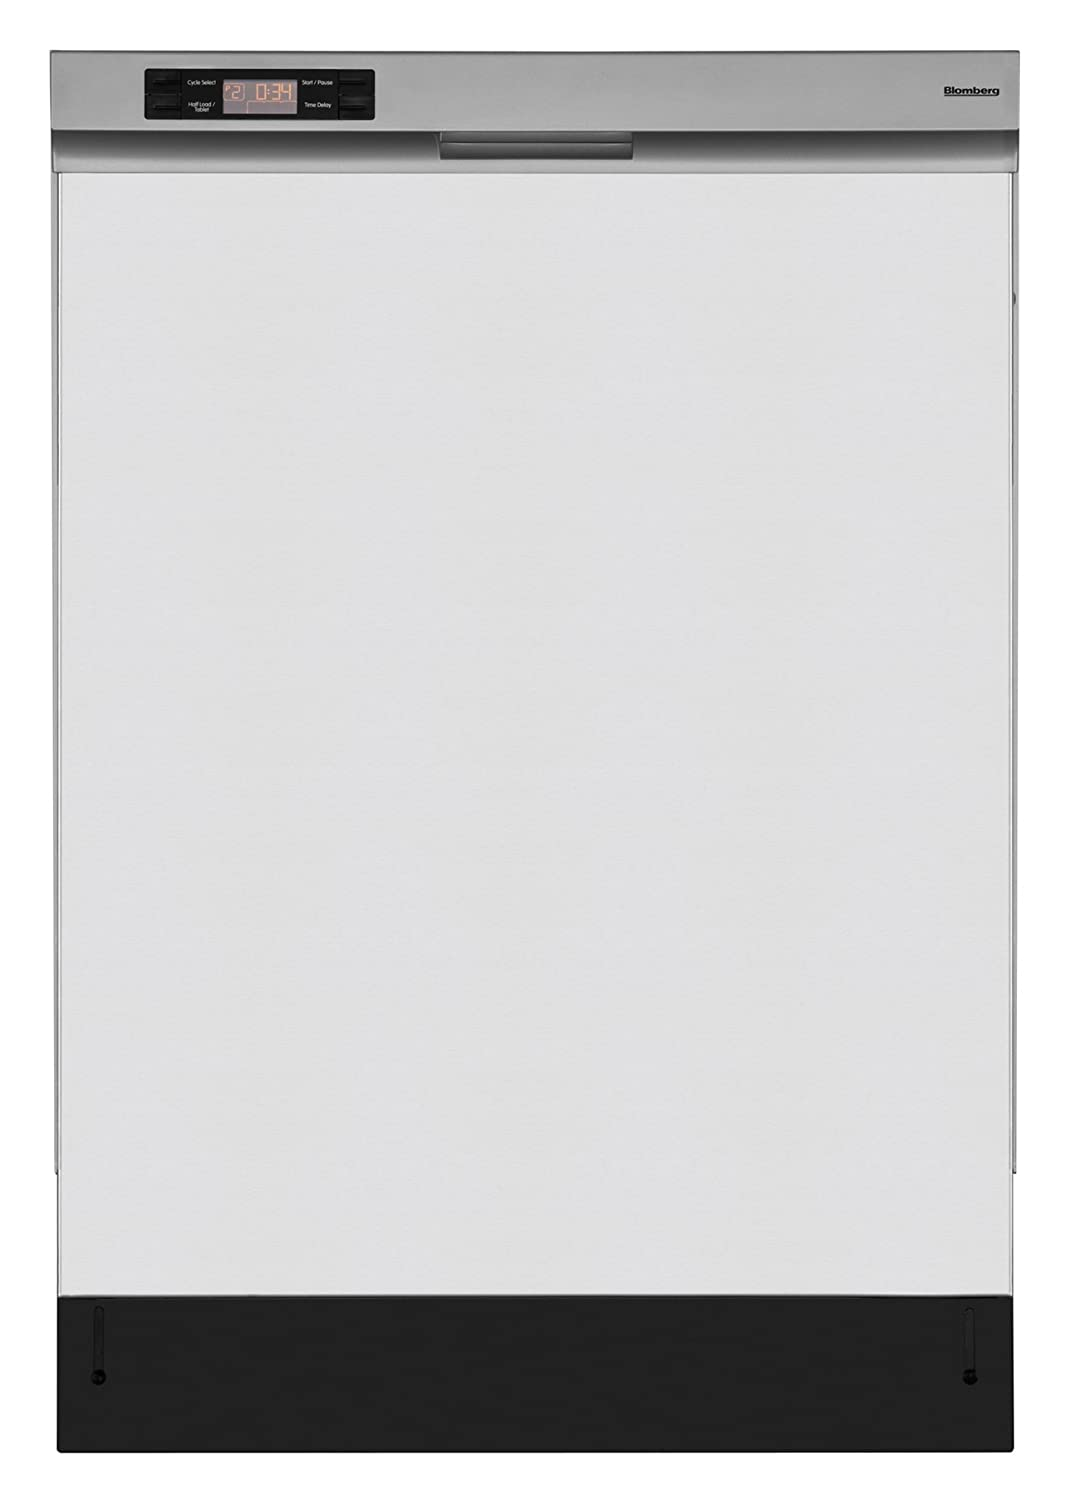 Blomberg DWT24100SS Dishwasher with Tall Tub Front Controls, 14 Place Settings, Stainless Steel